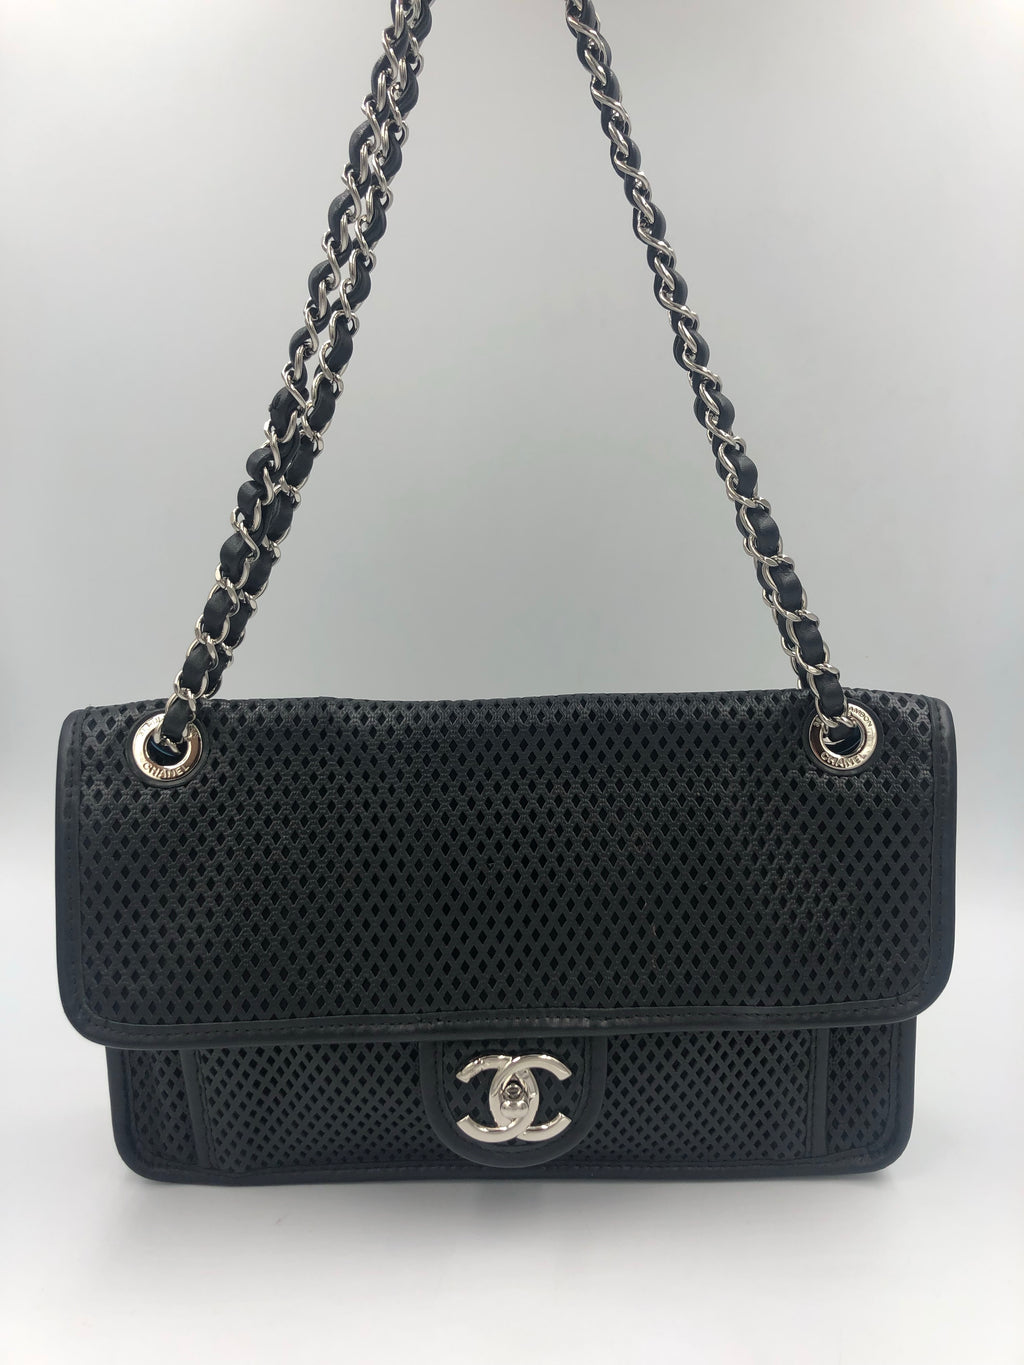 Chanel Up in The Air Perforated Flap Bag